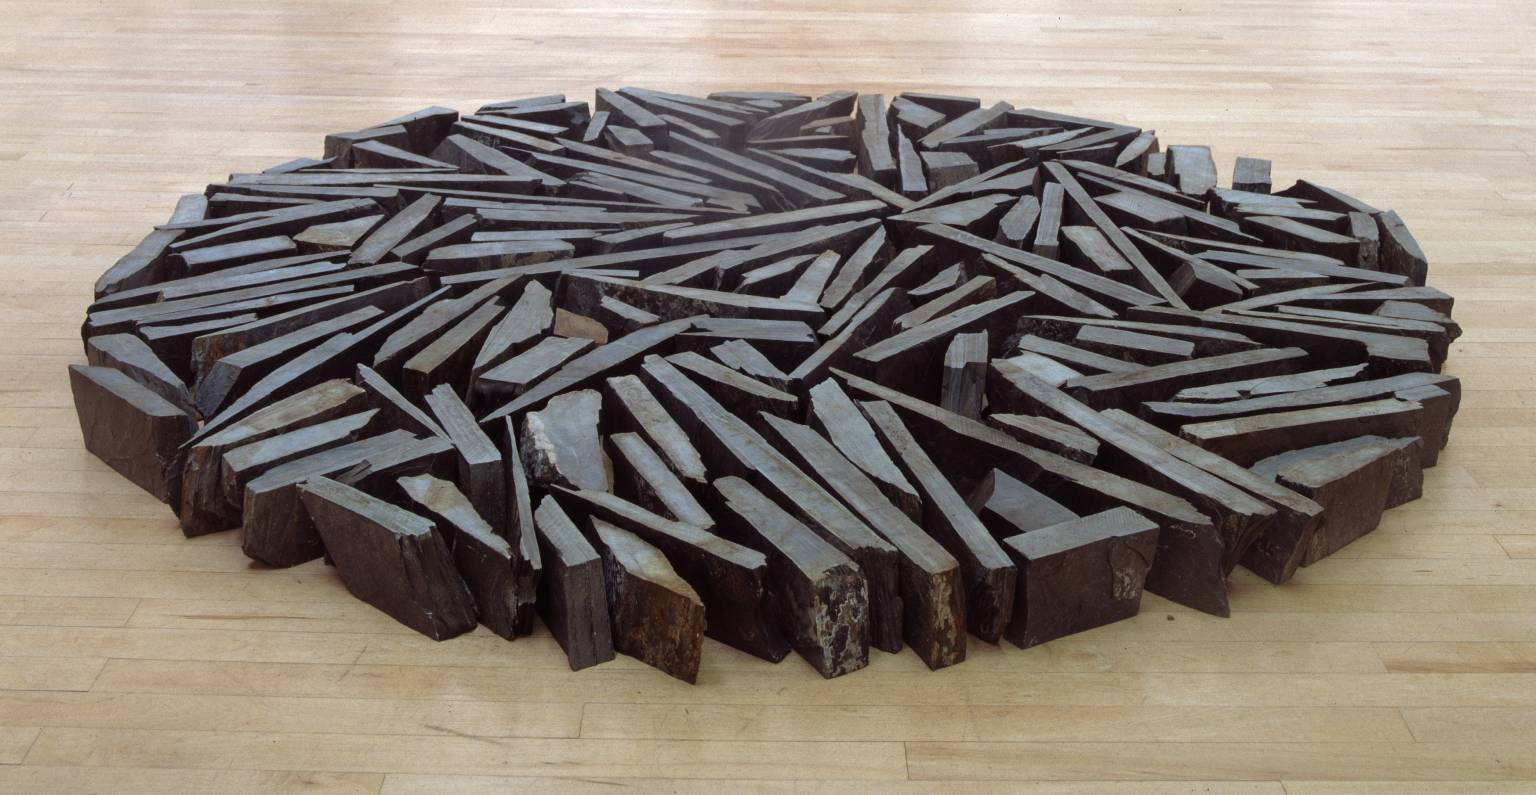 Richard Long South Bank Circle 1991